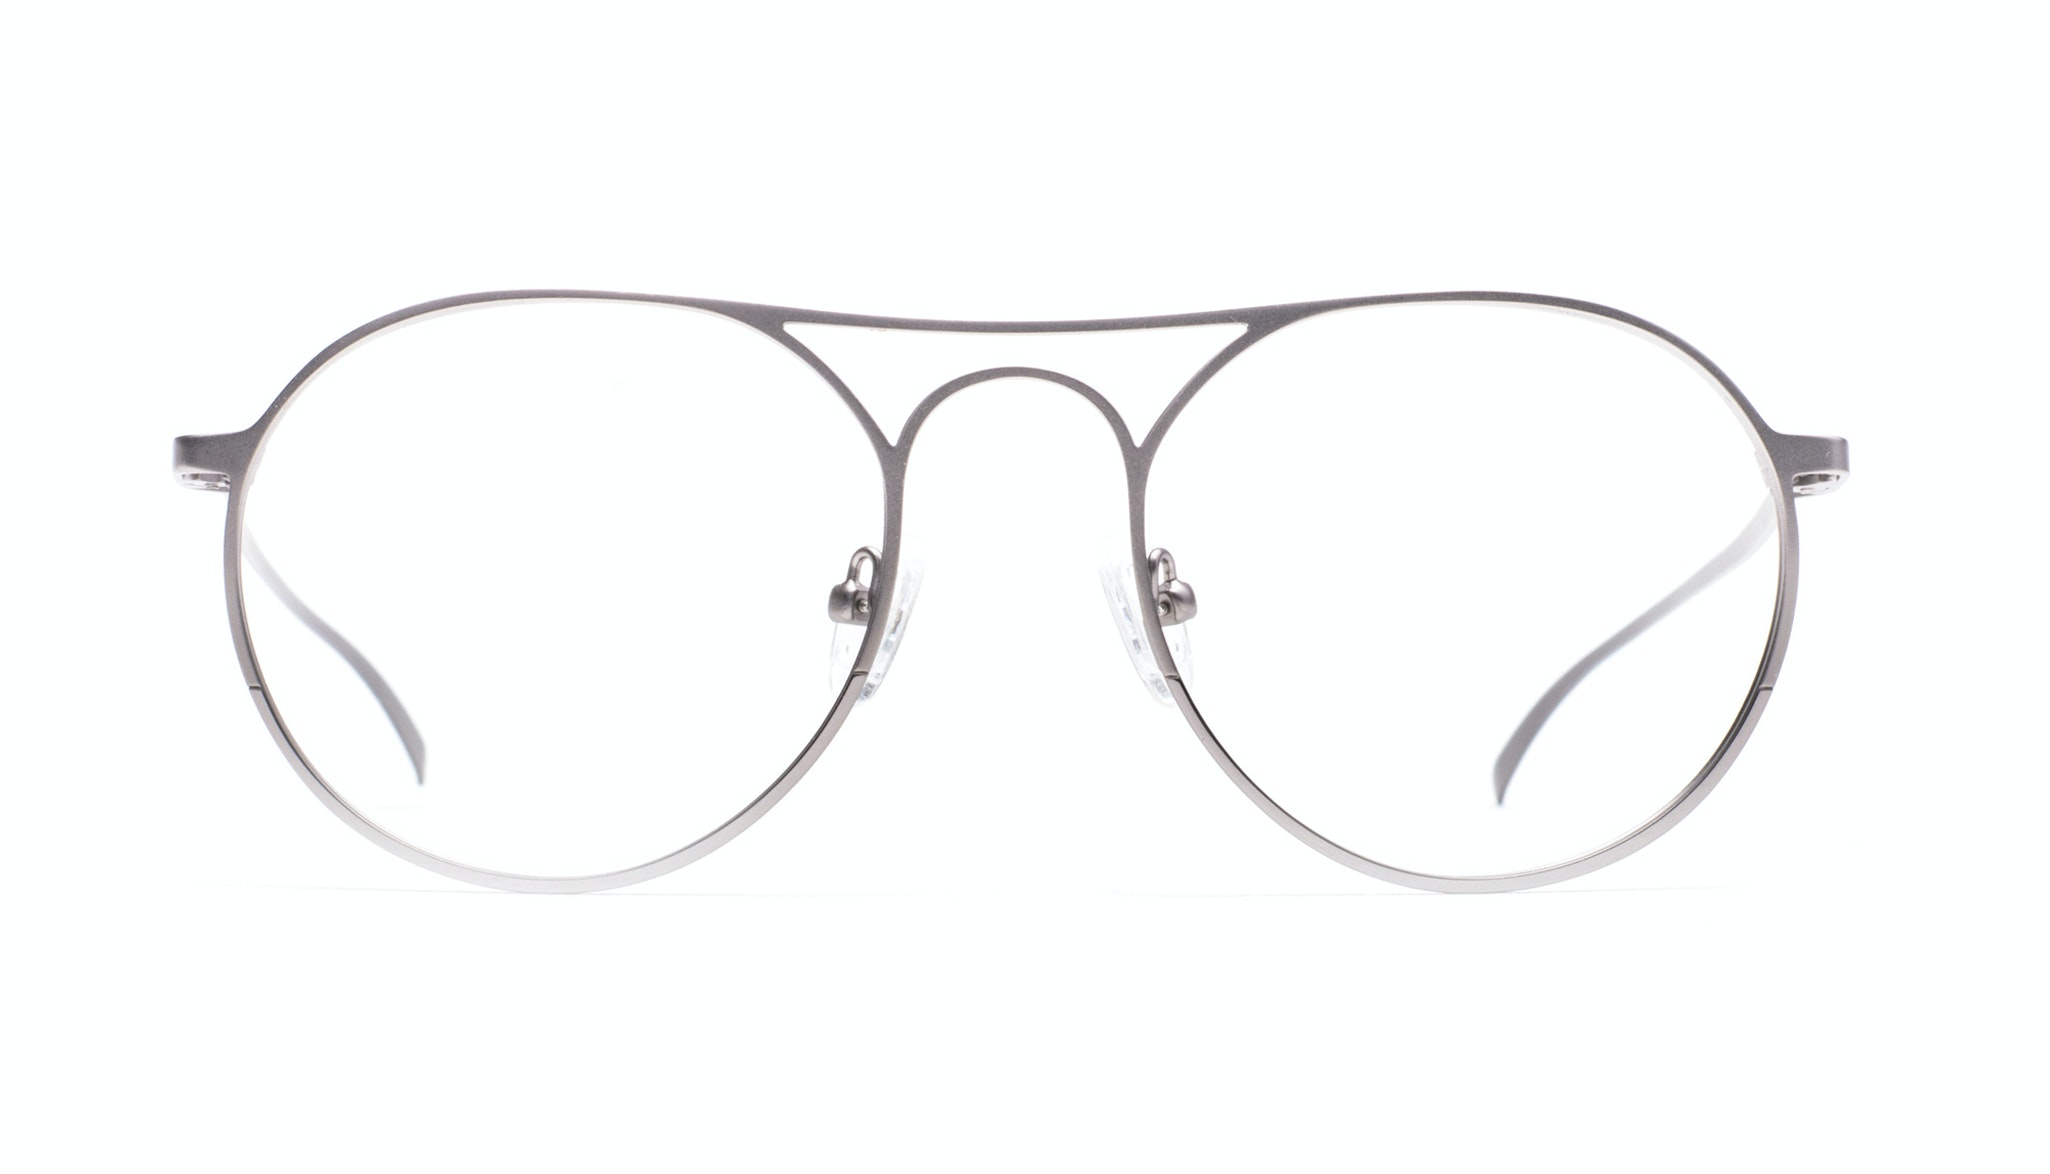 Affordable Fashion Glasses Aviator Round Eyeglasses Men Contour Silver Front